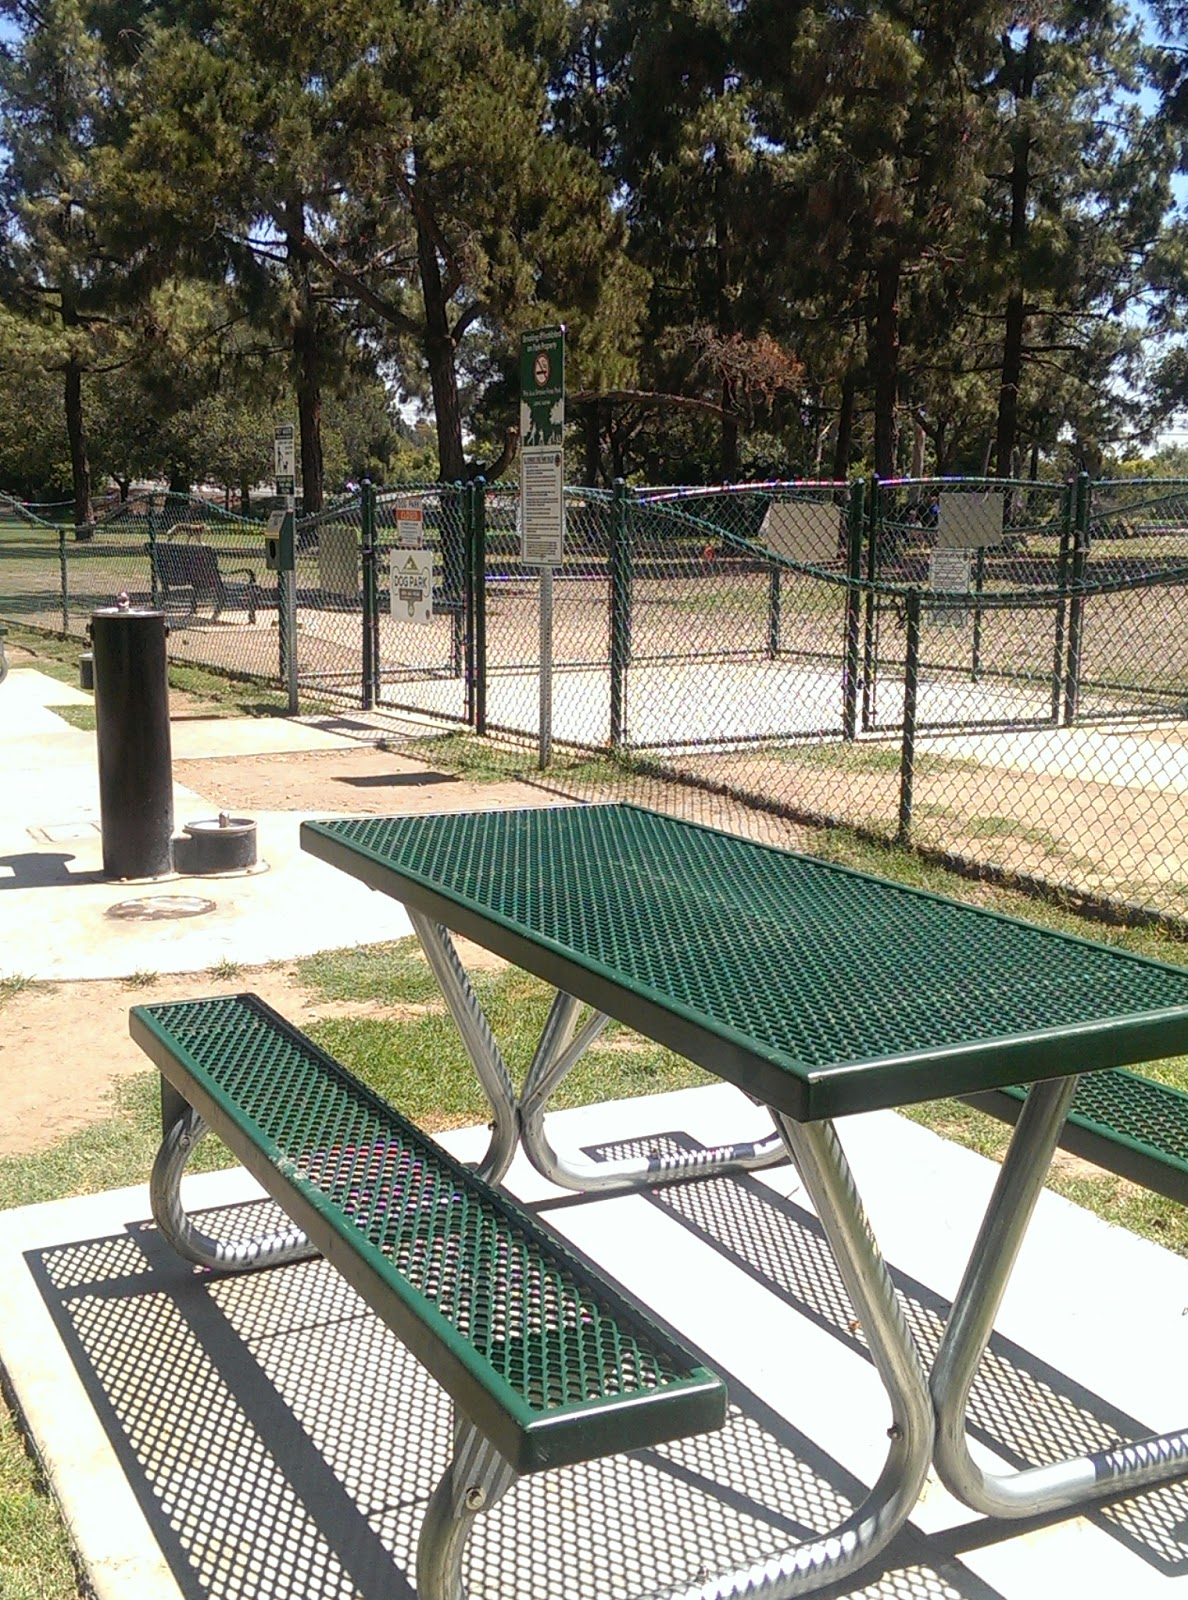 Picnic Tables, Drinking fountain